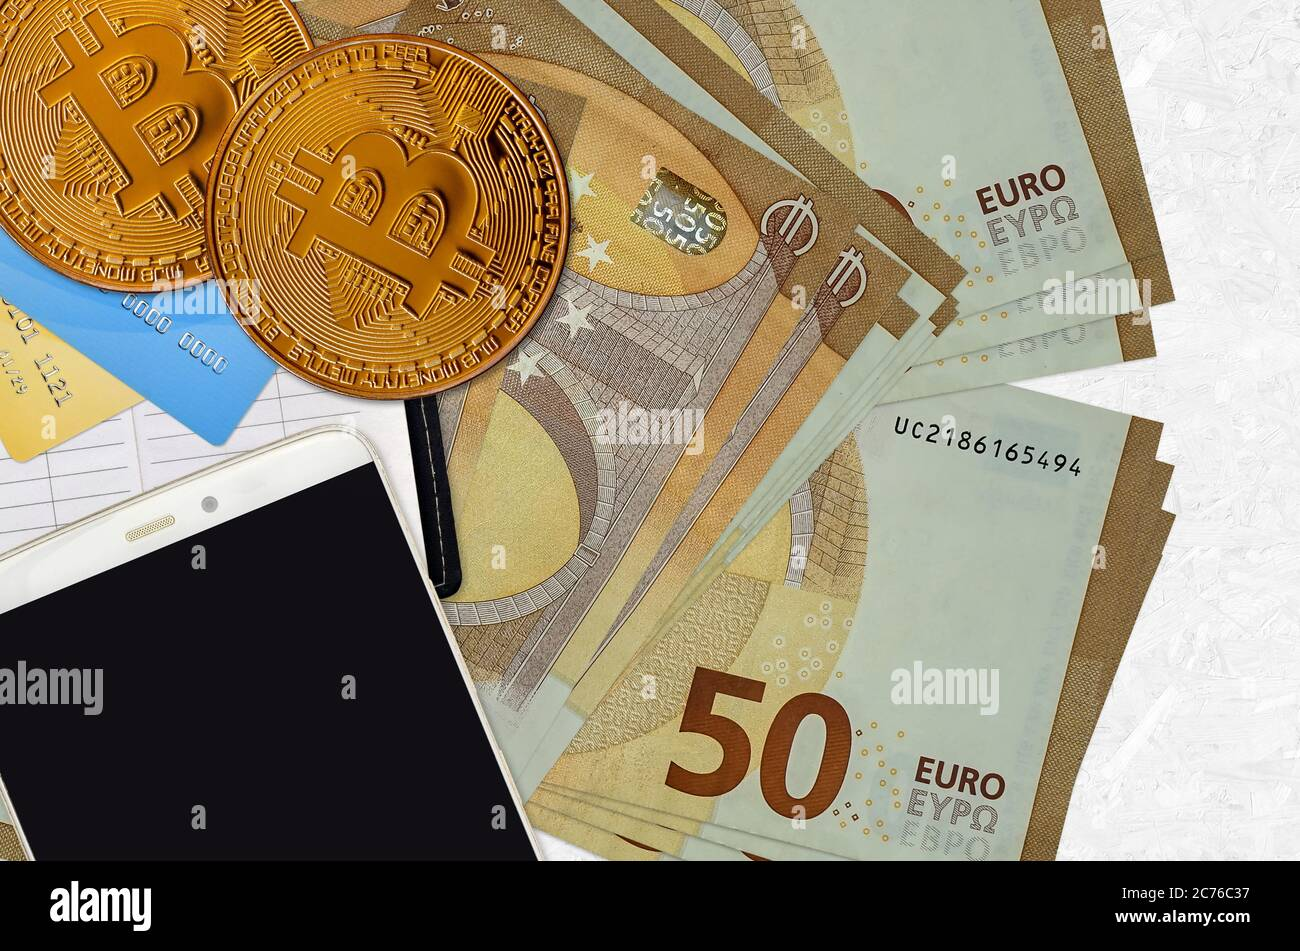 50 euro bills and golden bitcoins with smartphone and credit cards. Cryptocurrency investment concept. Crypto mining or trading transactions Stock Photo